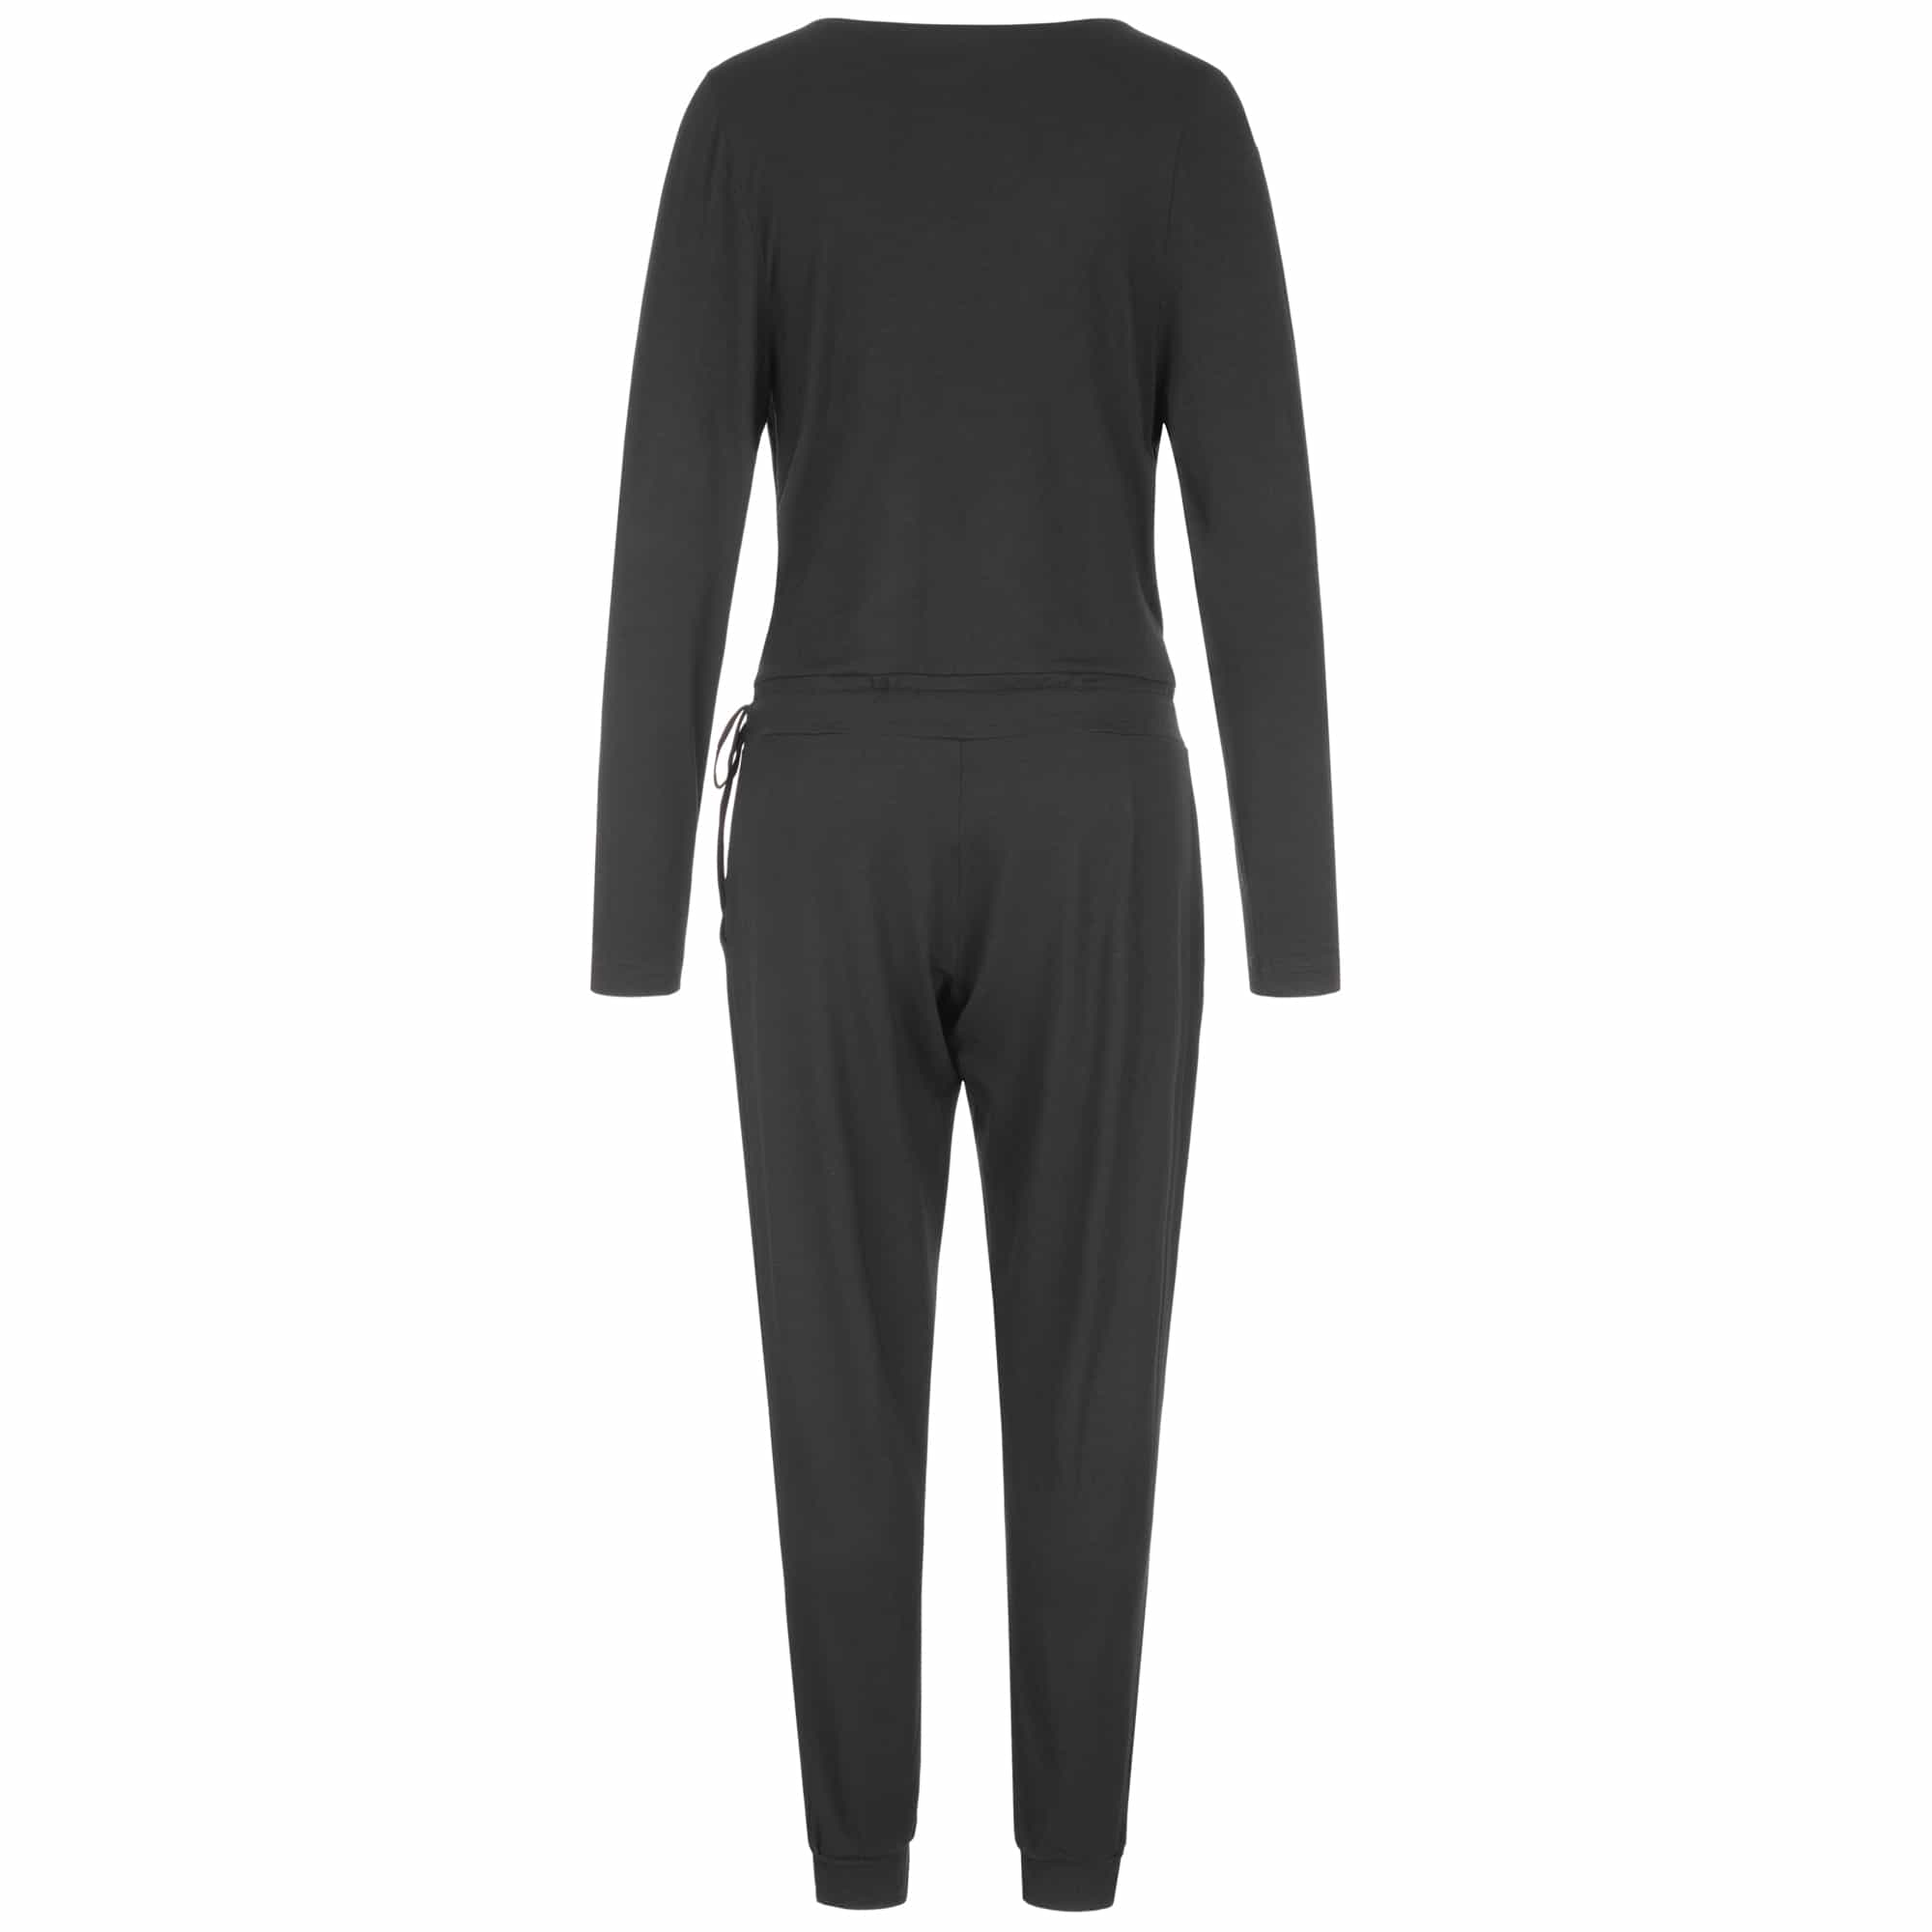 "Yoga-Jumpsuit ""Kali"", charcoal - Supersofter Langarm-Overall"